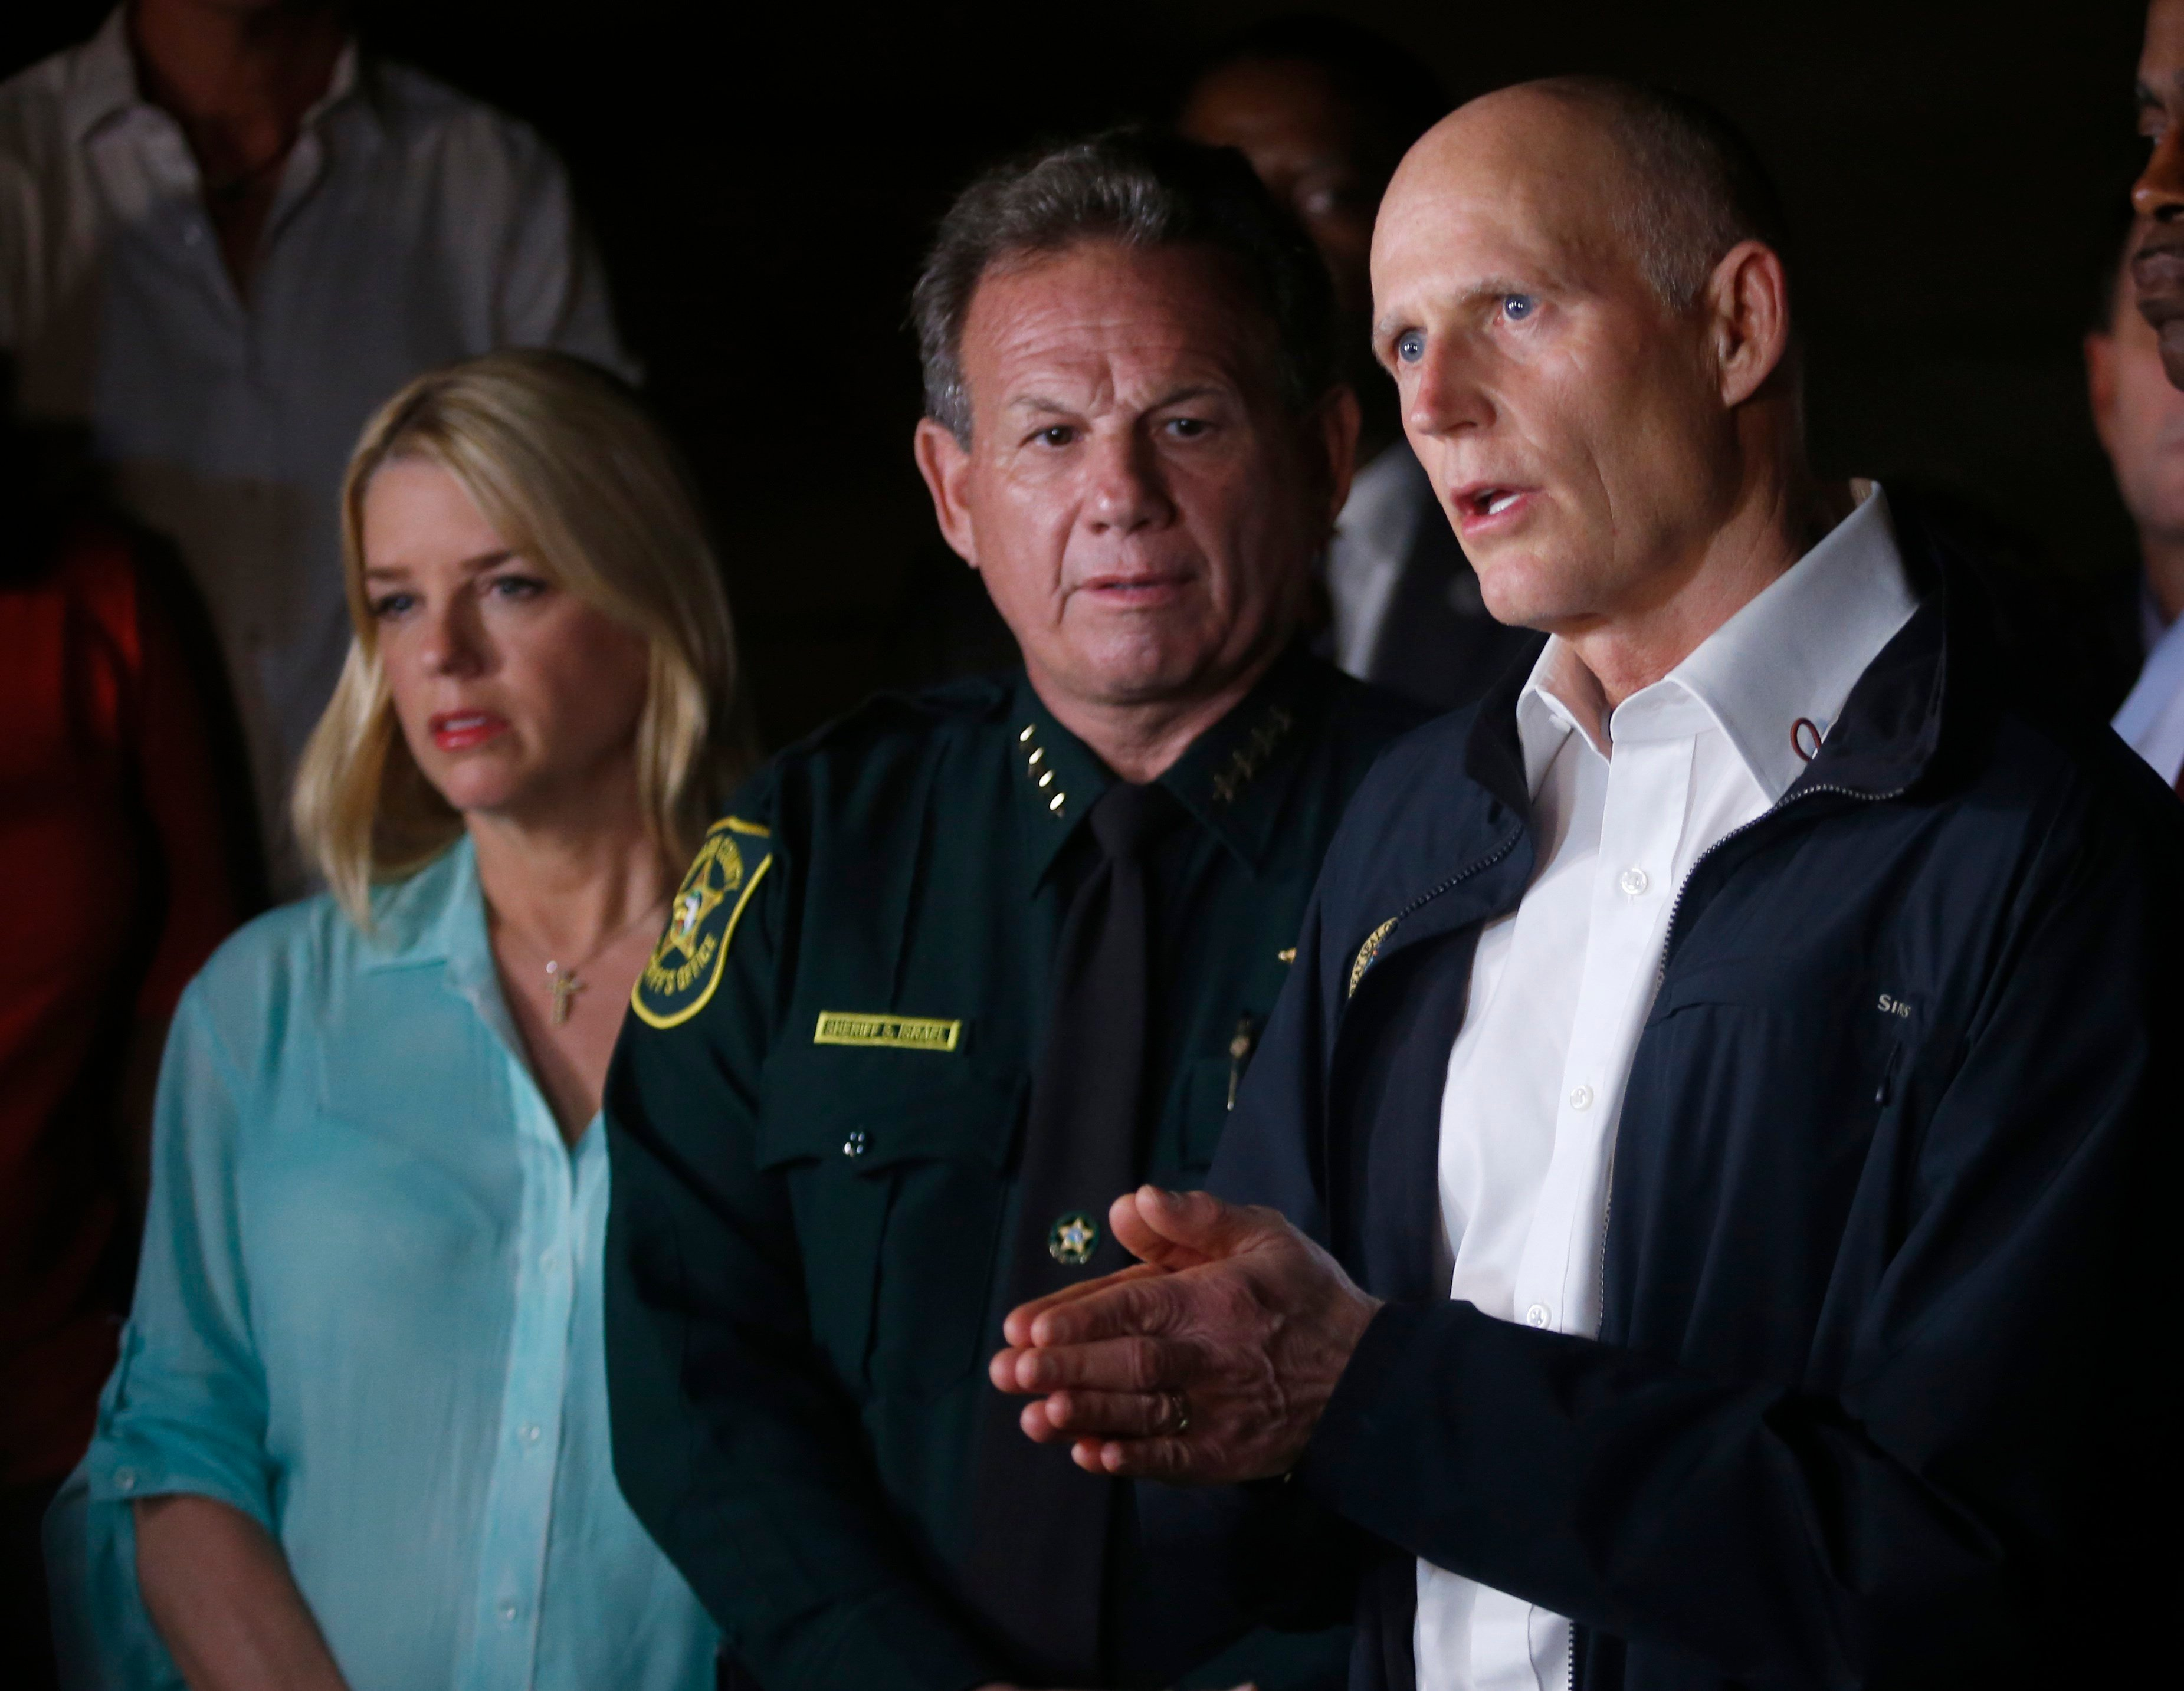 Broward sheriff's office launches internal investigations amid questions after Fla. massacre